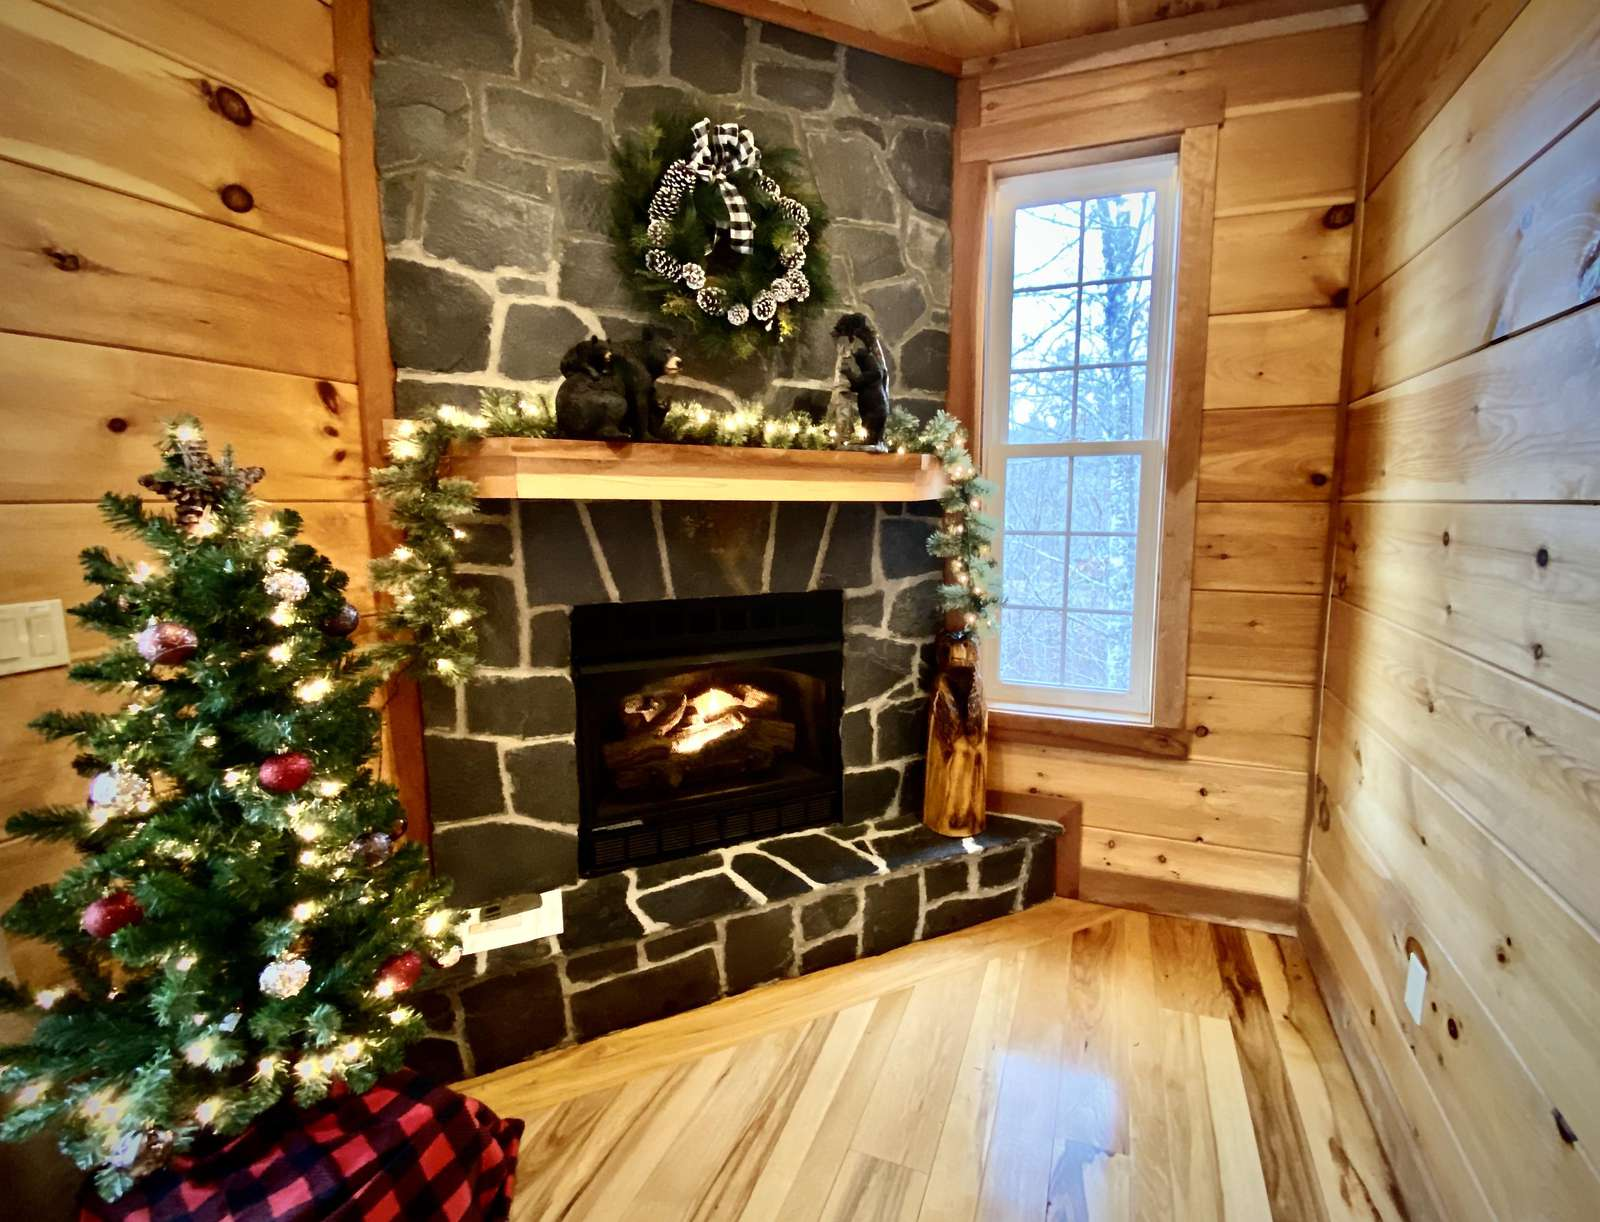 Holiday Cheer and a Cozy Fireplace